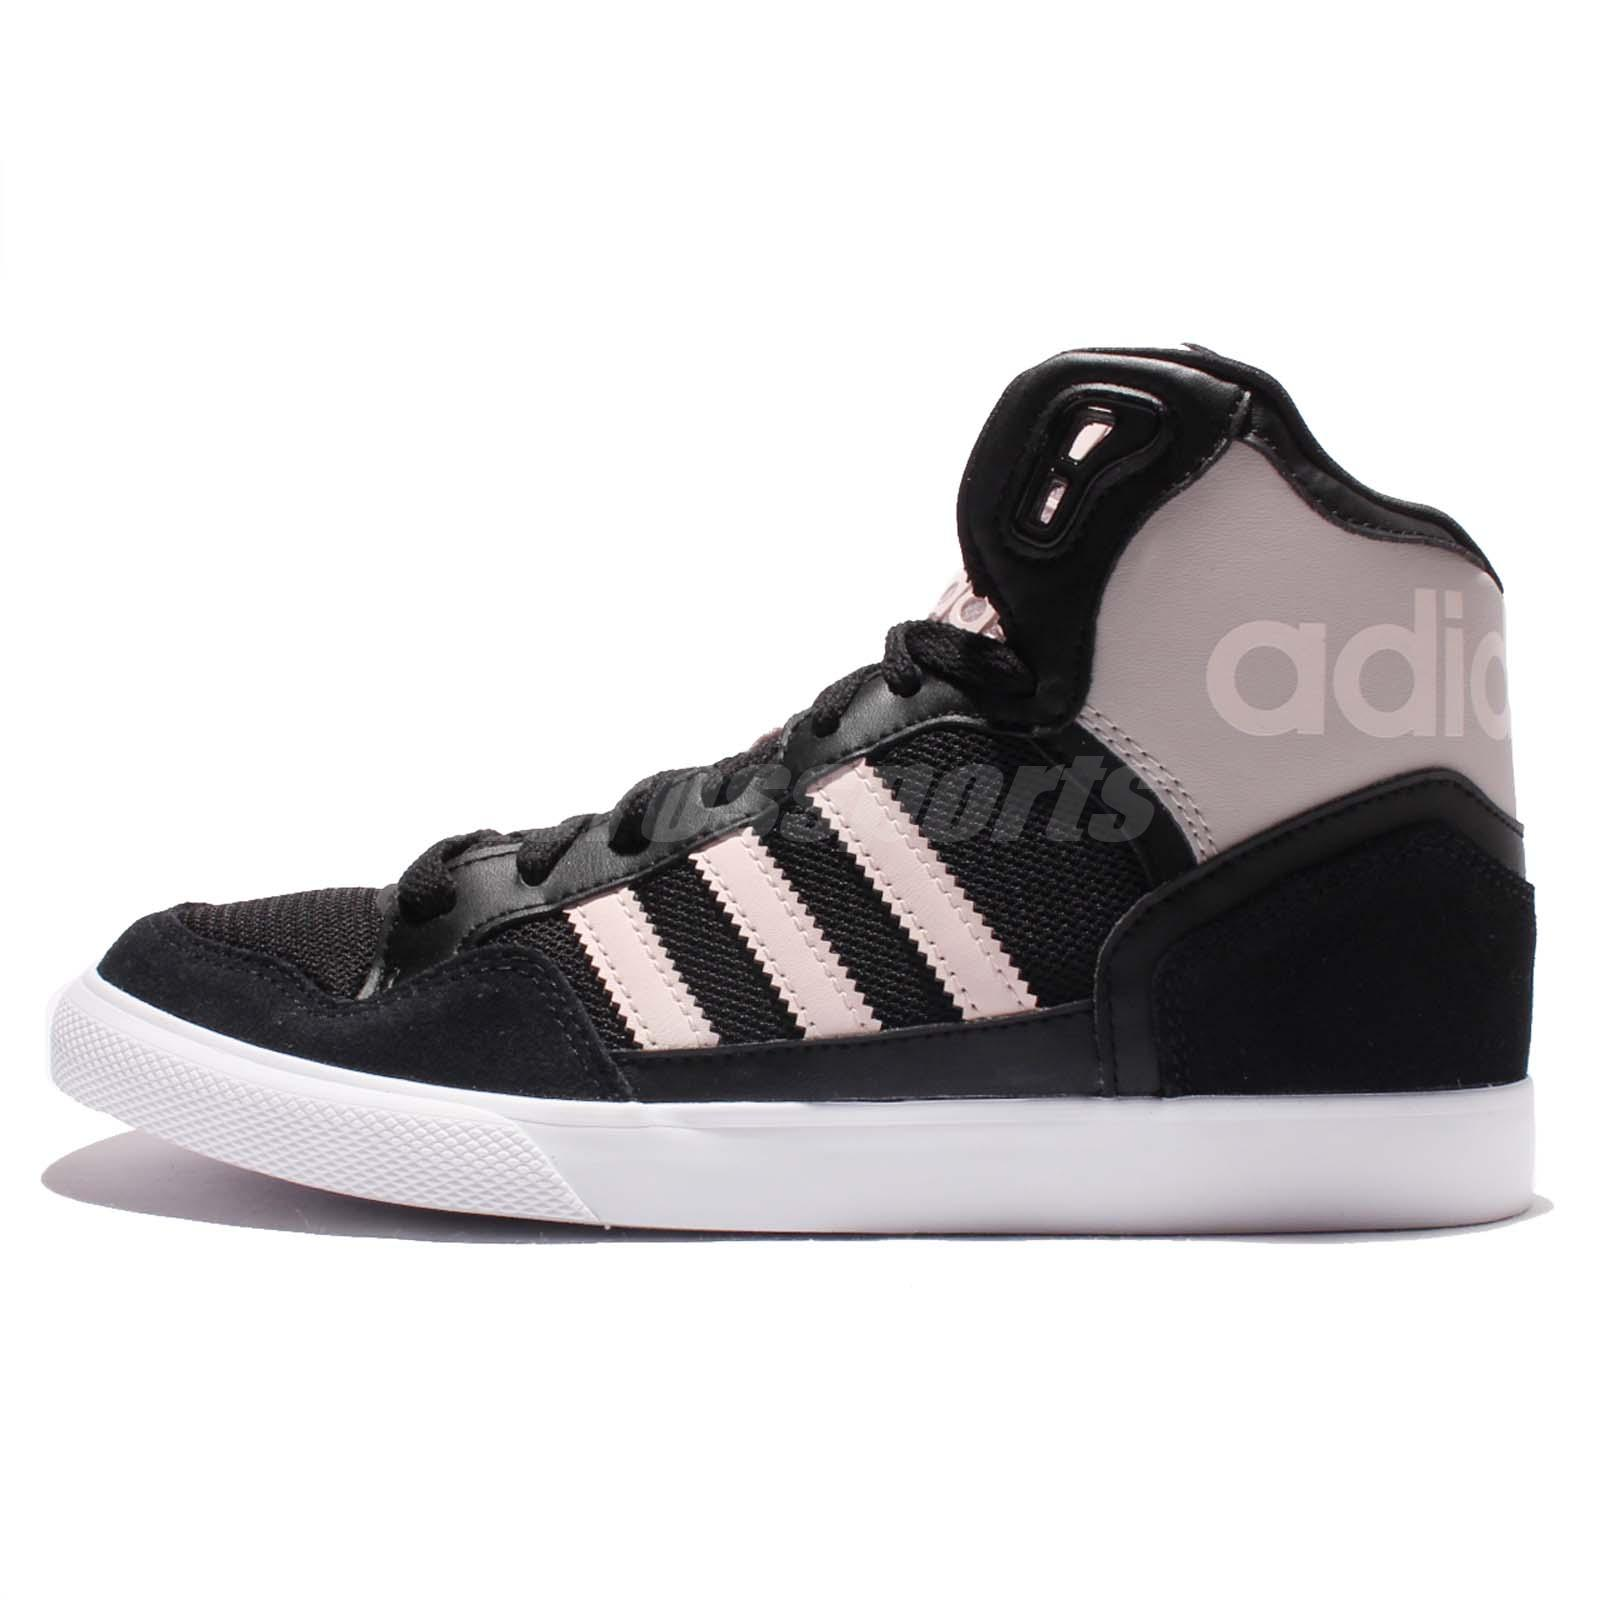 adidas Originals Extaball W Black Grey Pink Womens Wedges Casual Shoes AQ4798